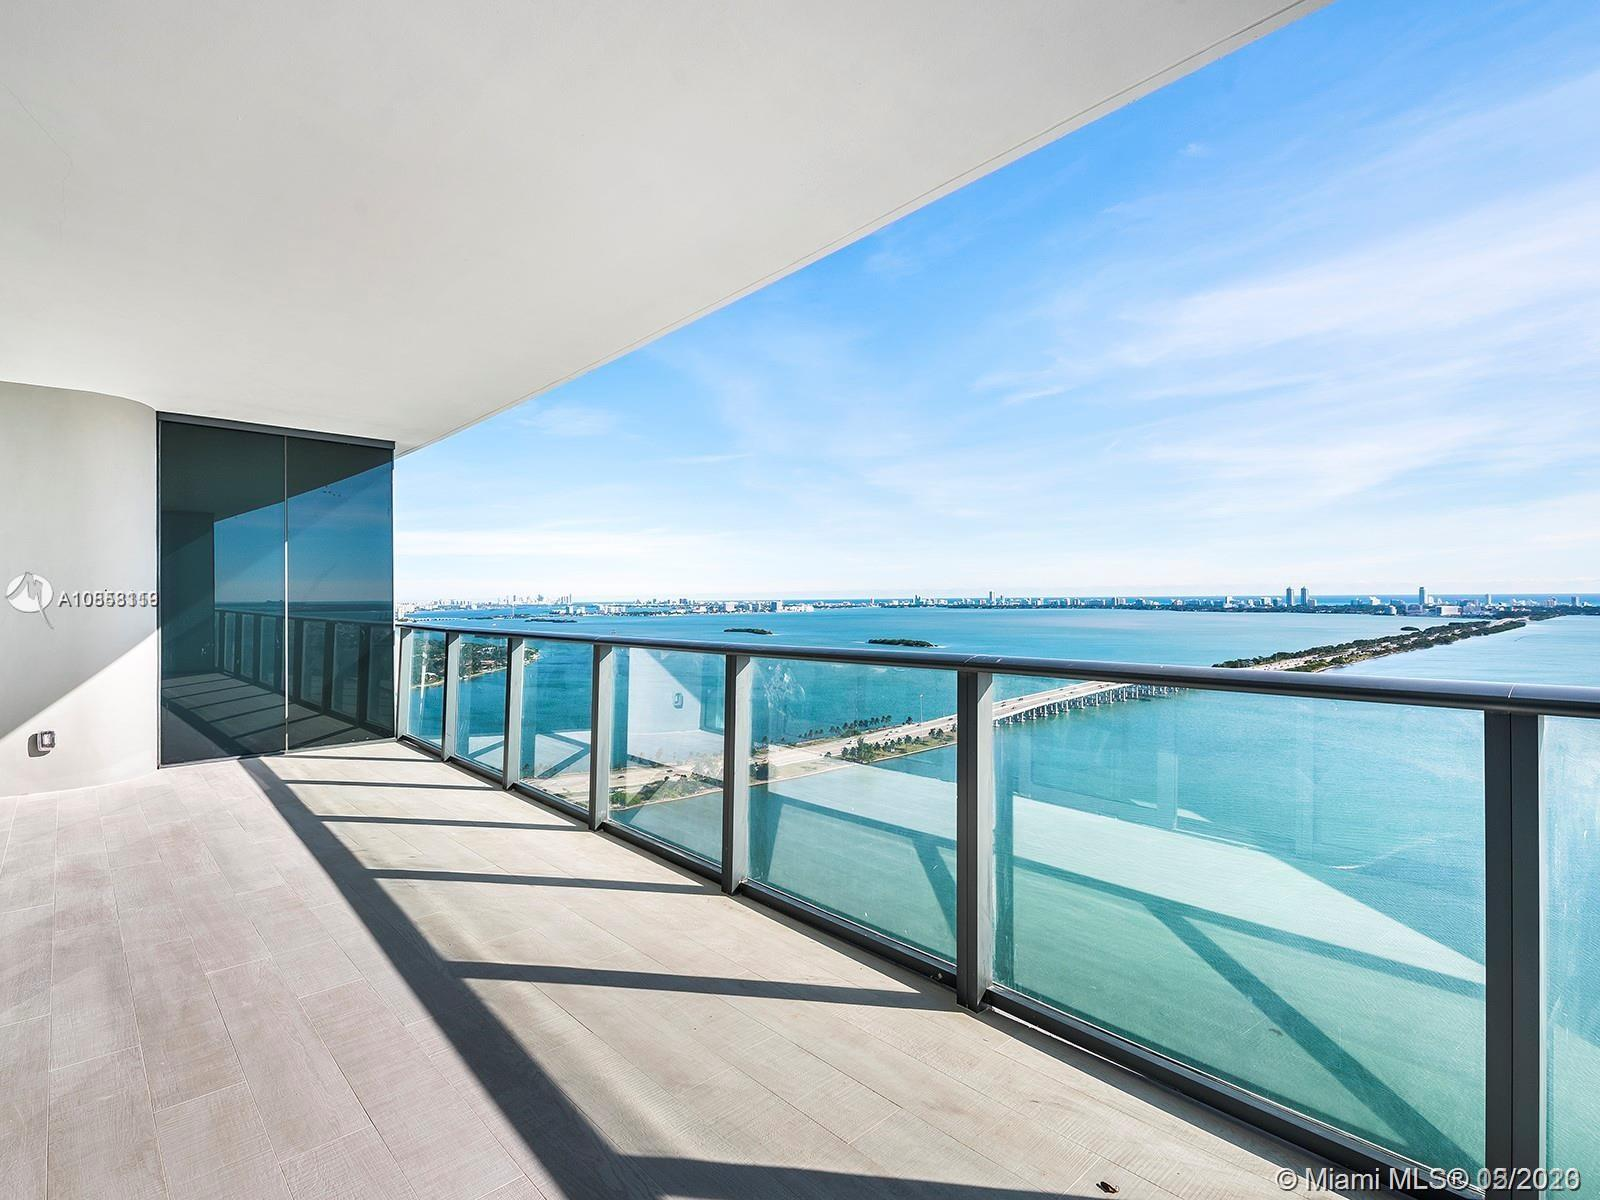 Beautiful 1 Bed + Den Unit with unobstructed views to the Bay from living room and master bedroom. T